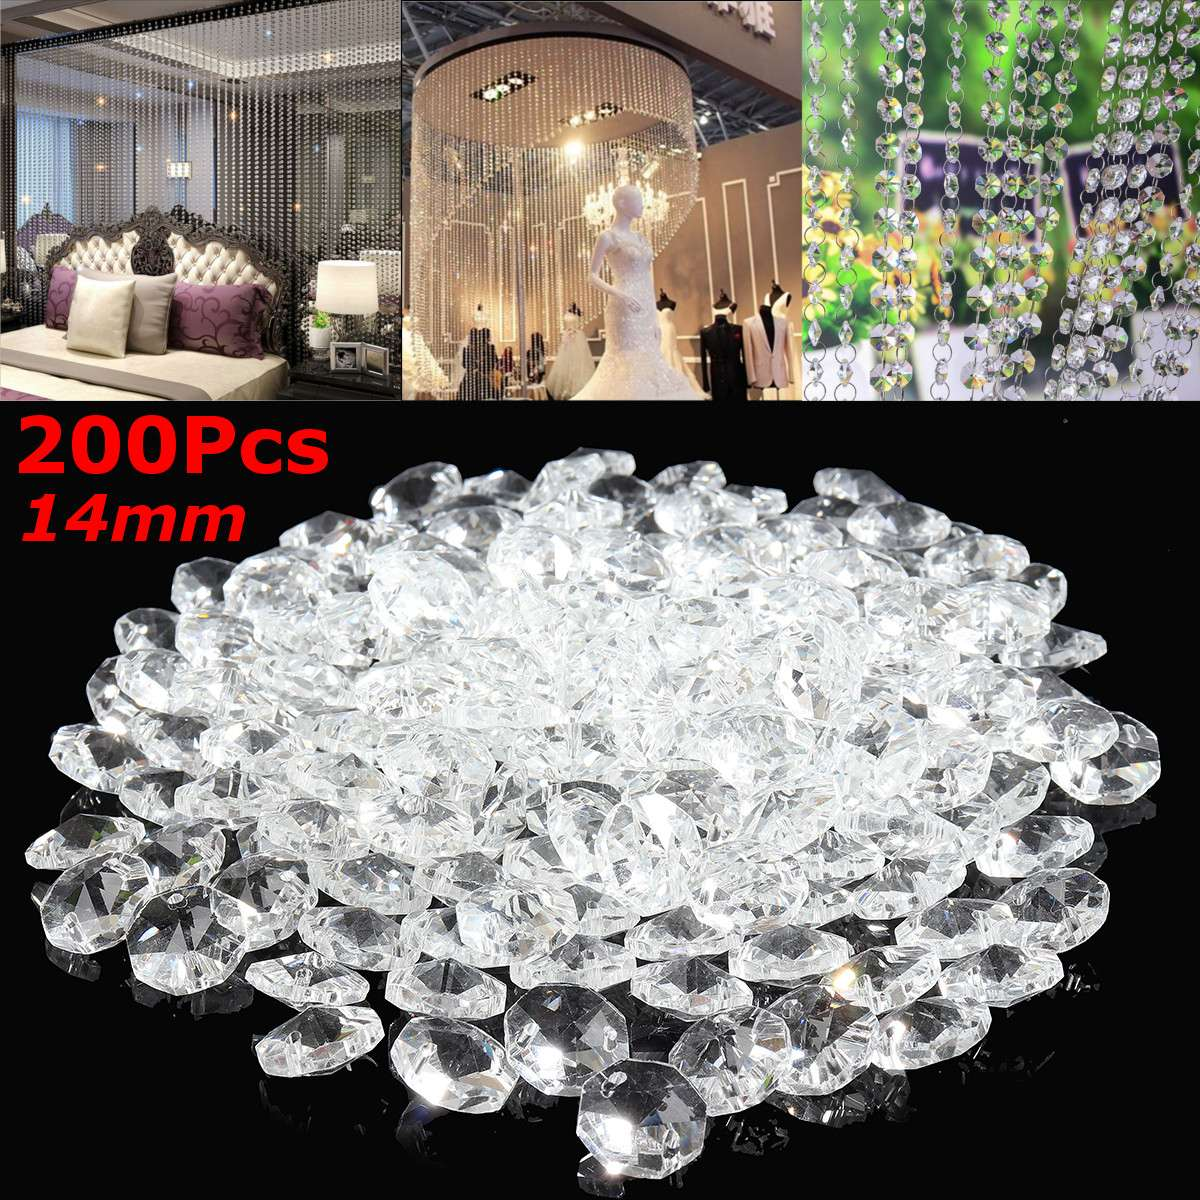 200pcs Clear 14mm Crystal Glass Pendant Light Ball Prism Faceted Glass Candlestick Crystal Parts Pendant Lamp Ball Home Decor